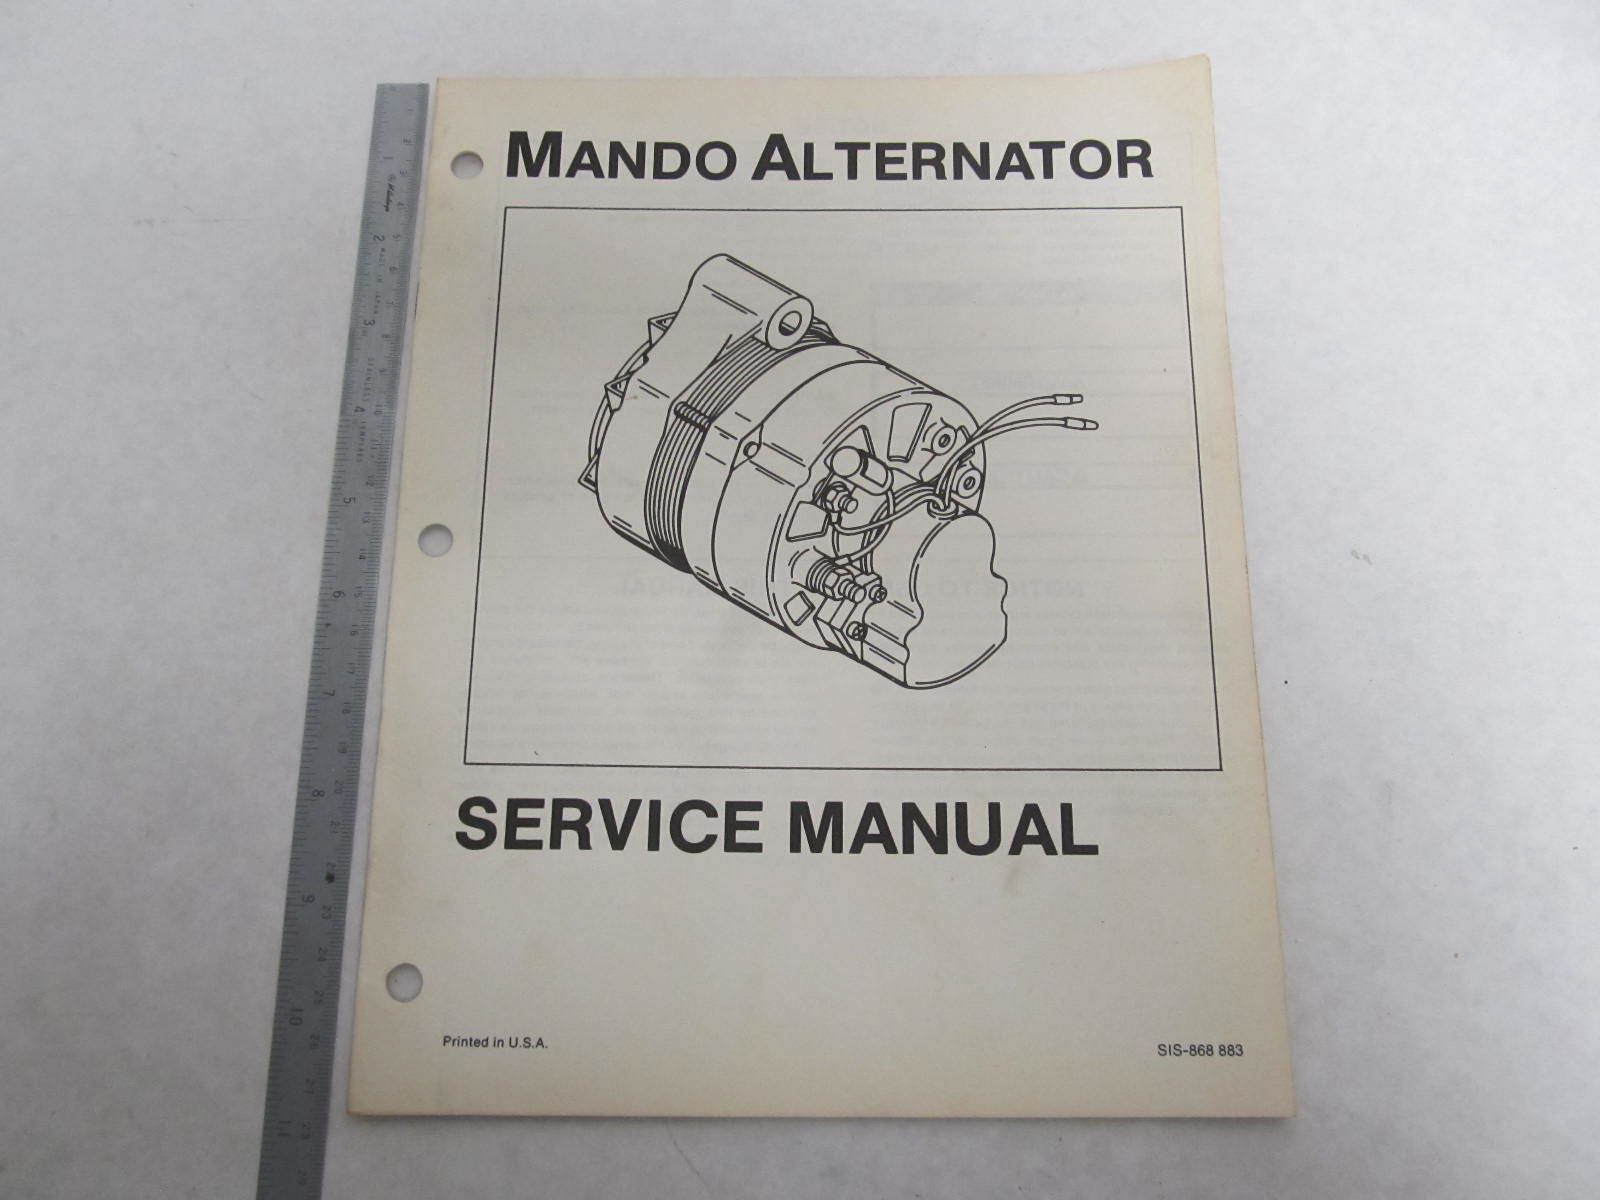 Fantastic marine alternator wiring diagram image collection the awesome mando marine alternator wiring diagram pictures electrical cheapraybanclubmaster Gallery